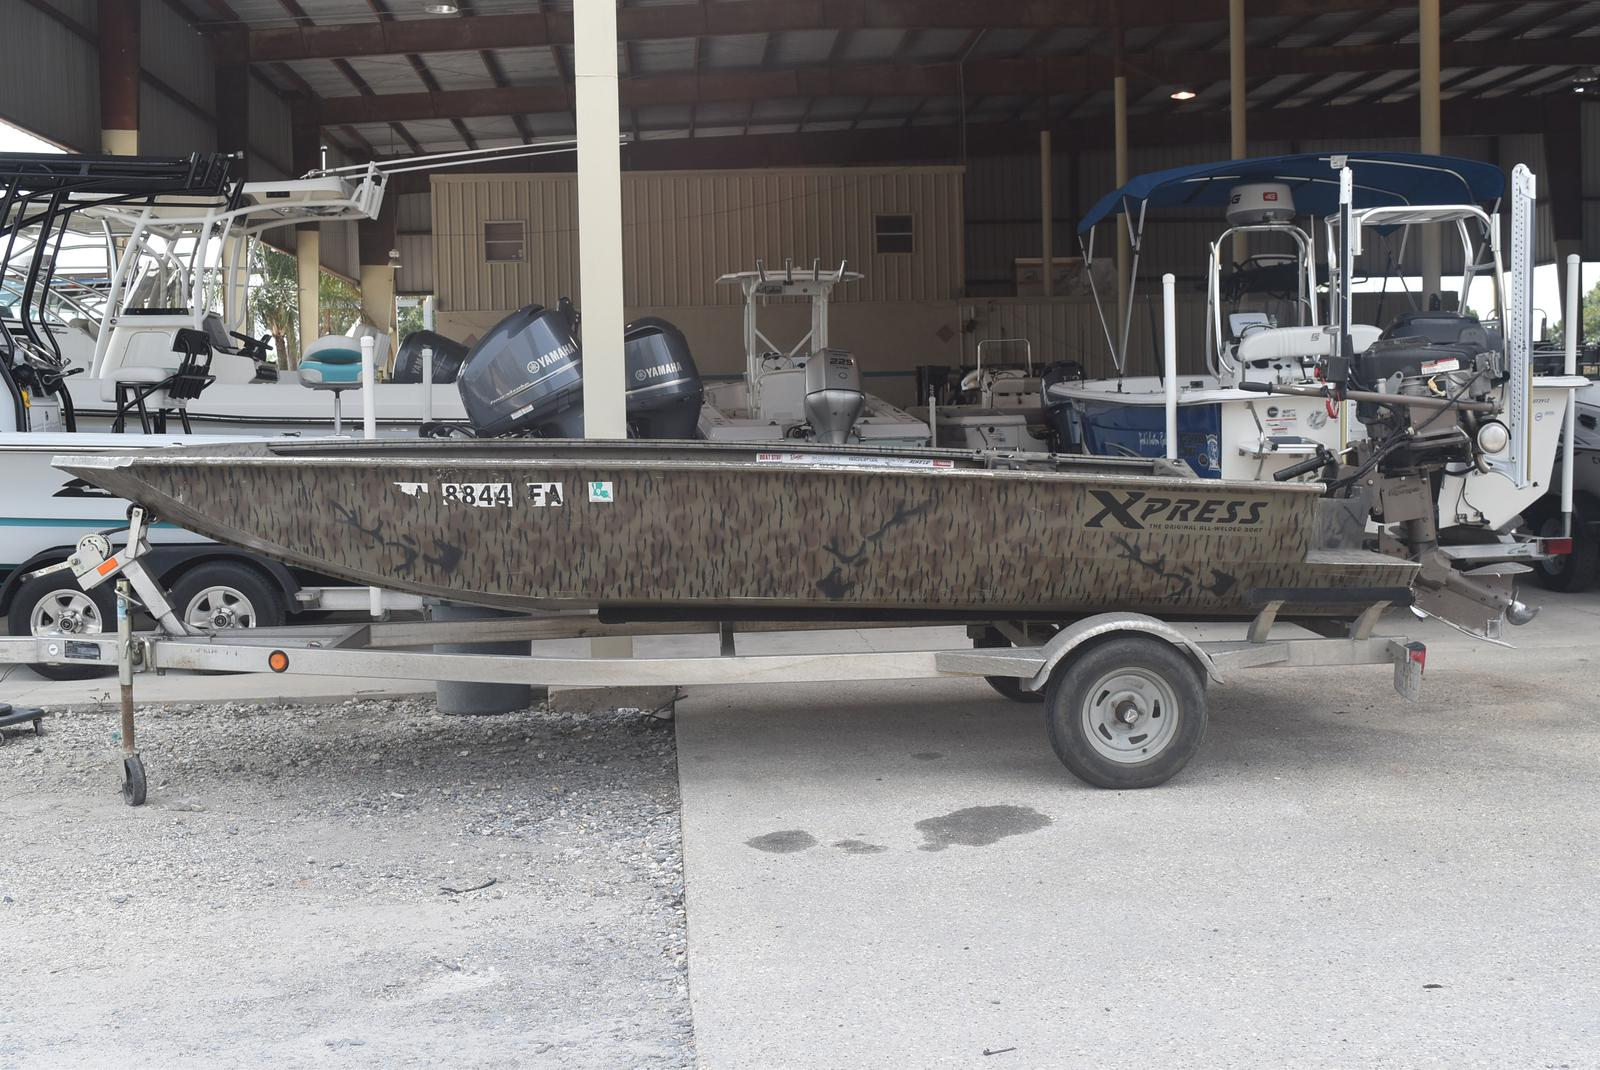 2013 XPRESS BAYOU 18 for sale